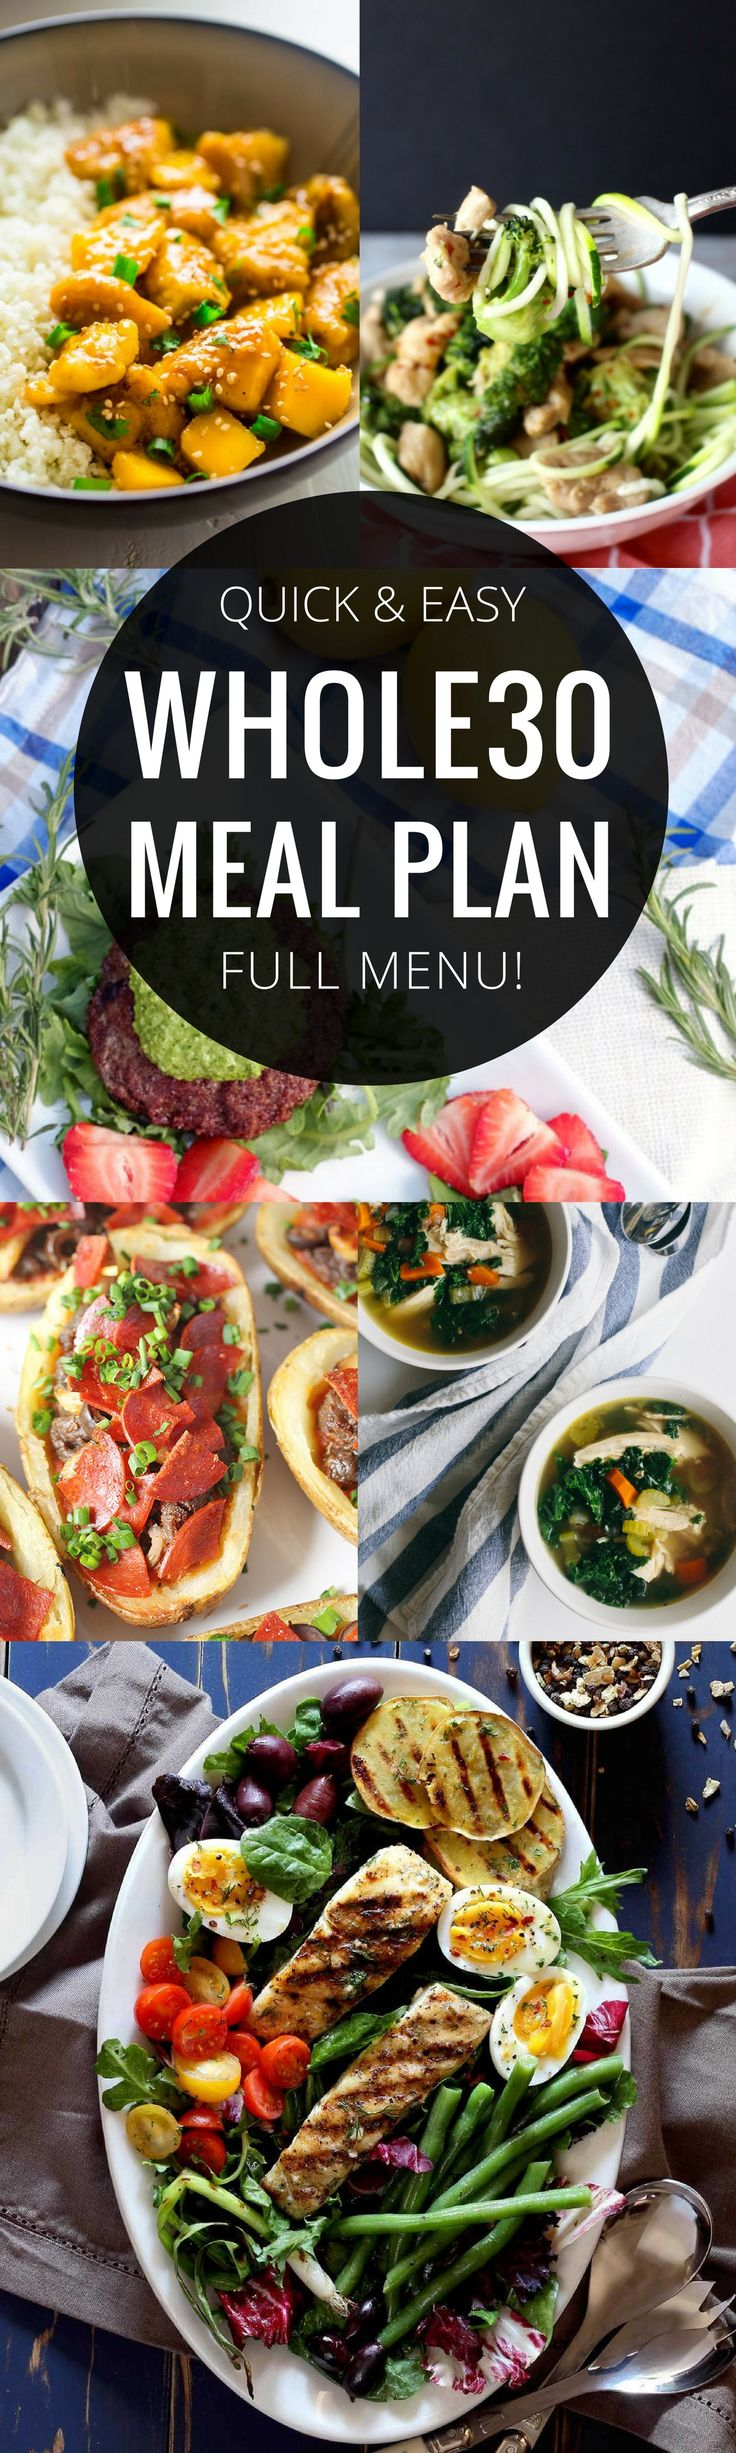 A Whole30 meal plan that's quick and healthy! Whole30 recipes just for you. Best Trader Joe's shopping list. Whole30 meal planning. Whole30 meal prep. Healthy paleo meals. Healthy Whole30 recipes. Easy Whole30 recipes. via @themovementmenu